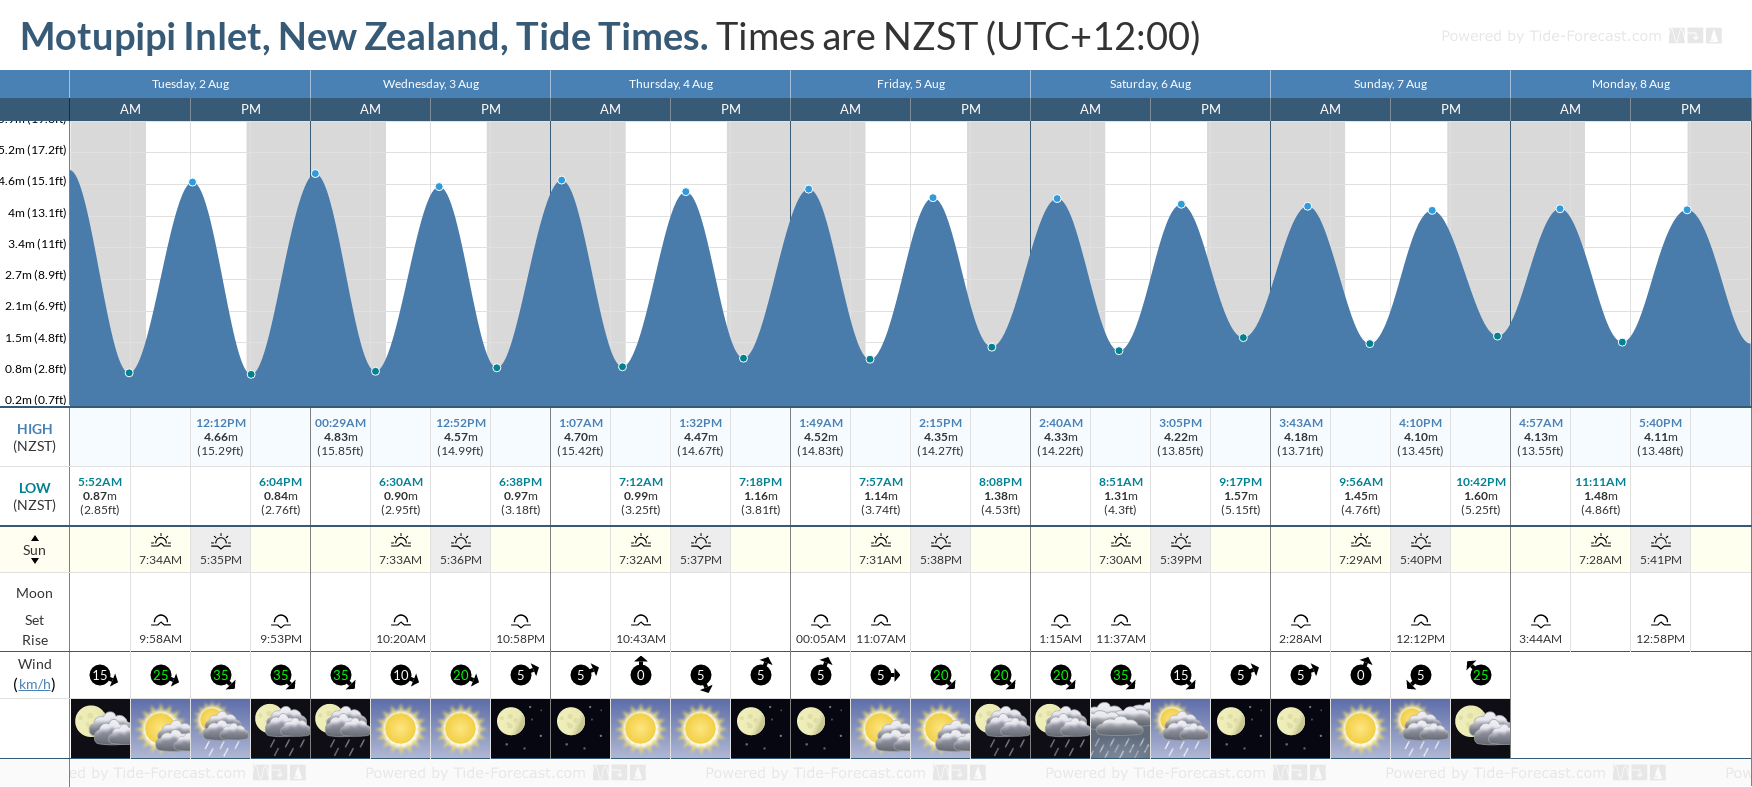 Motupipi Inlet, New Zealand Tide Chart including high and low tide tide times for the next 7 days